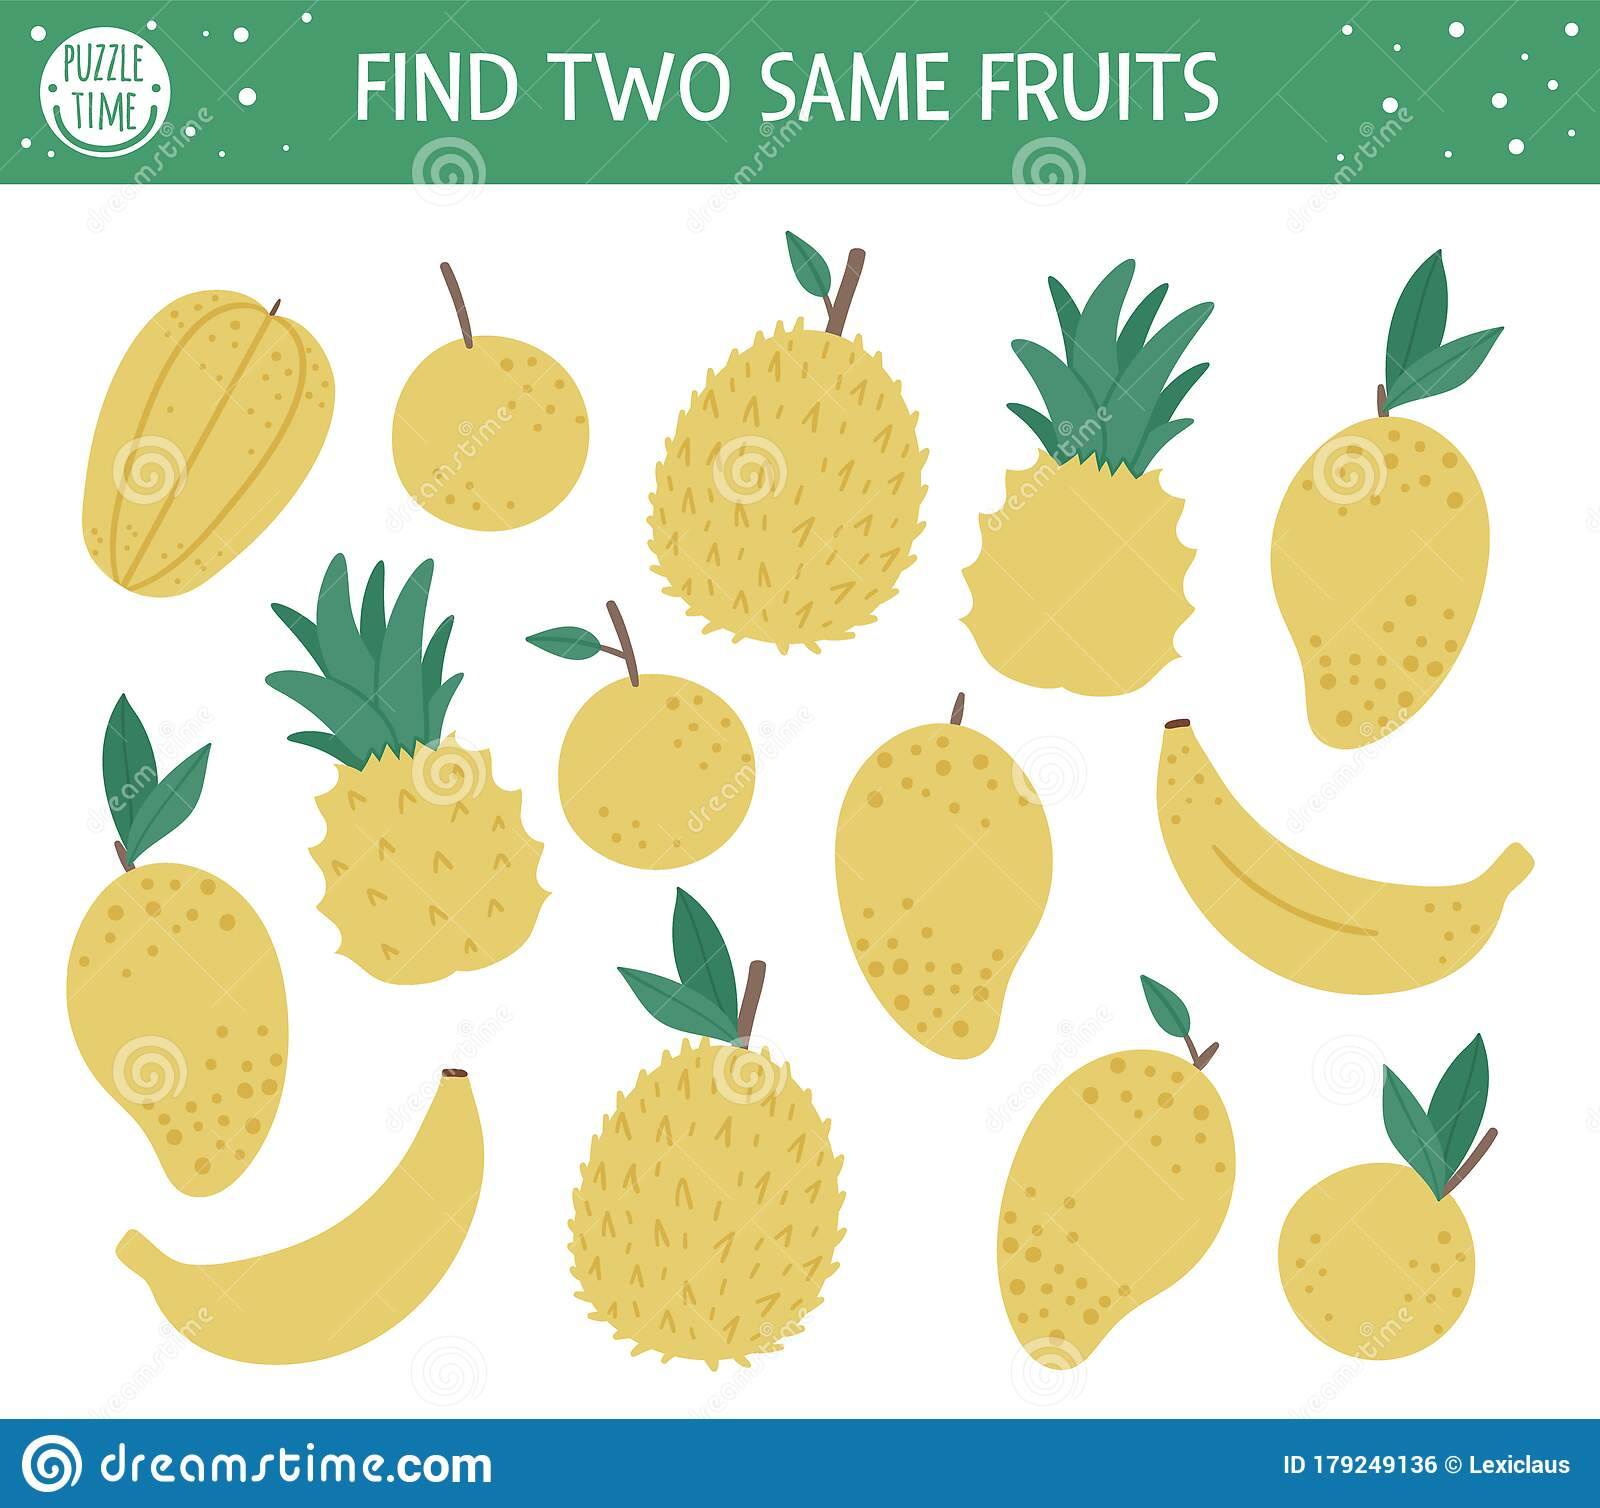 Find Two Same Fruits Tropical Matching Activity For